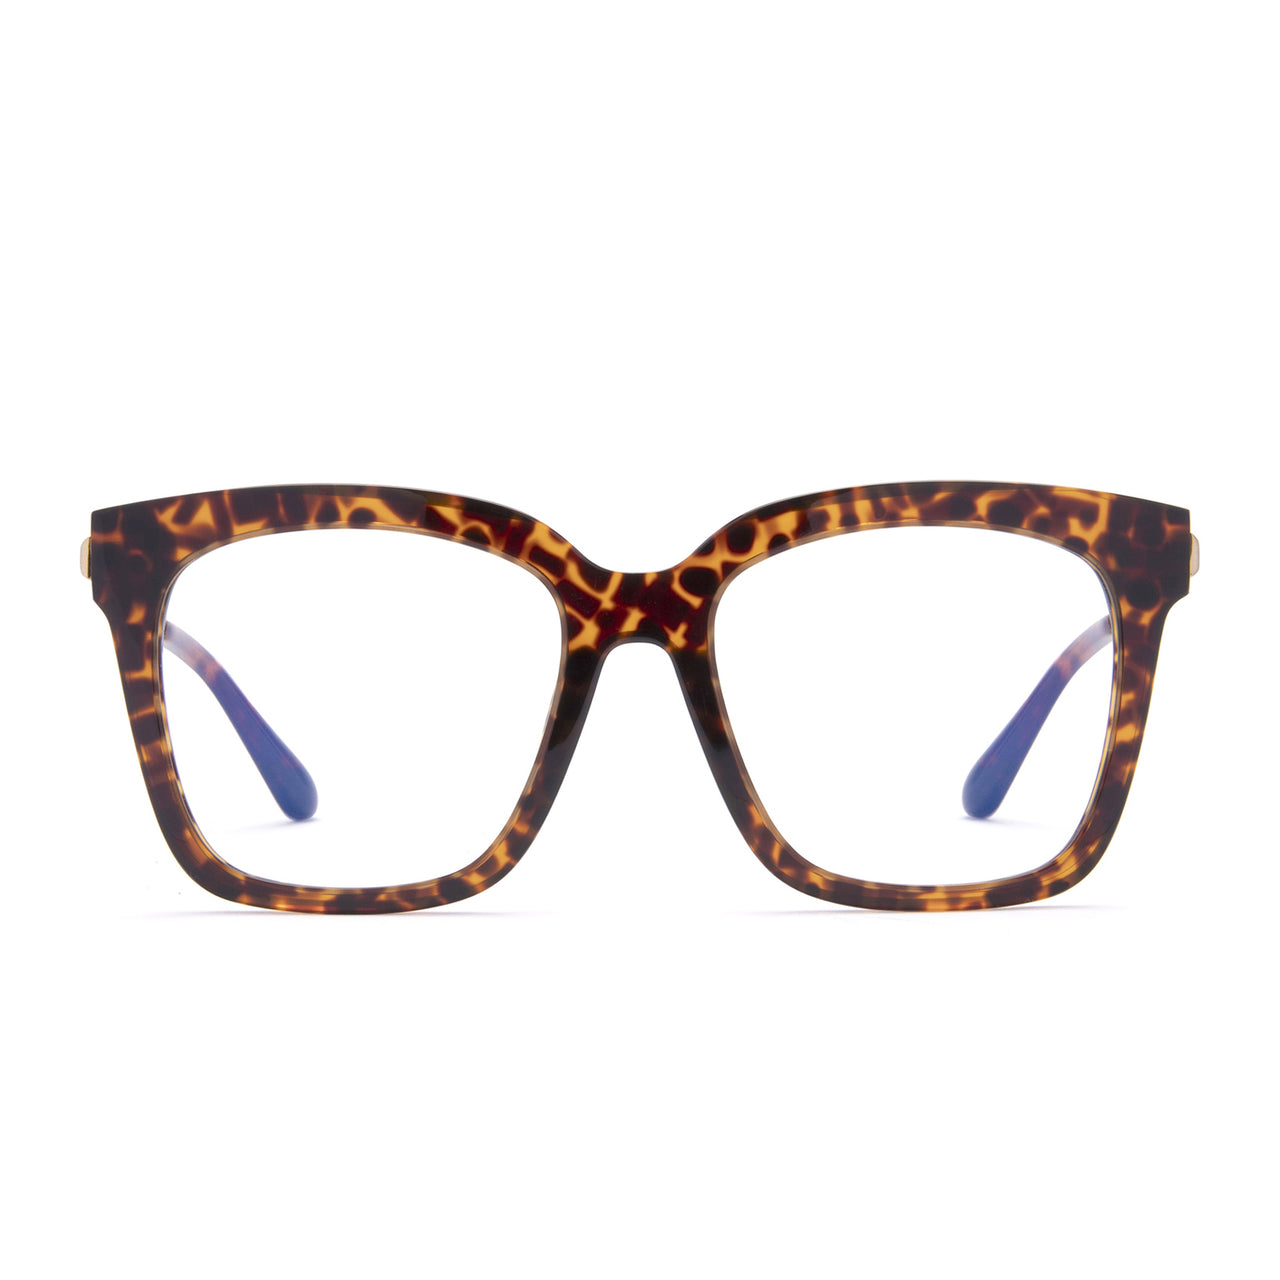 BELLA XS - WILDCAT LEOPARD + PRESCRIPTION CLEAR FRONT